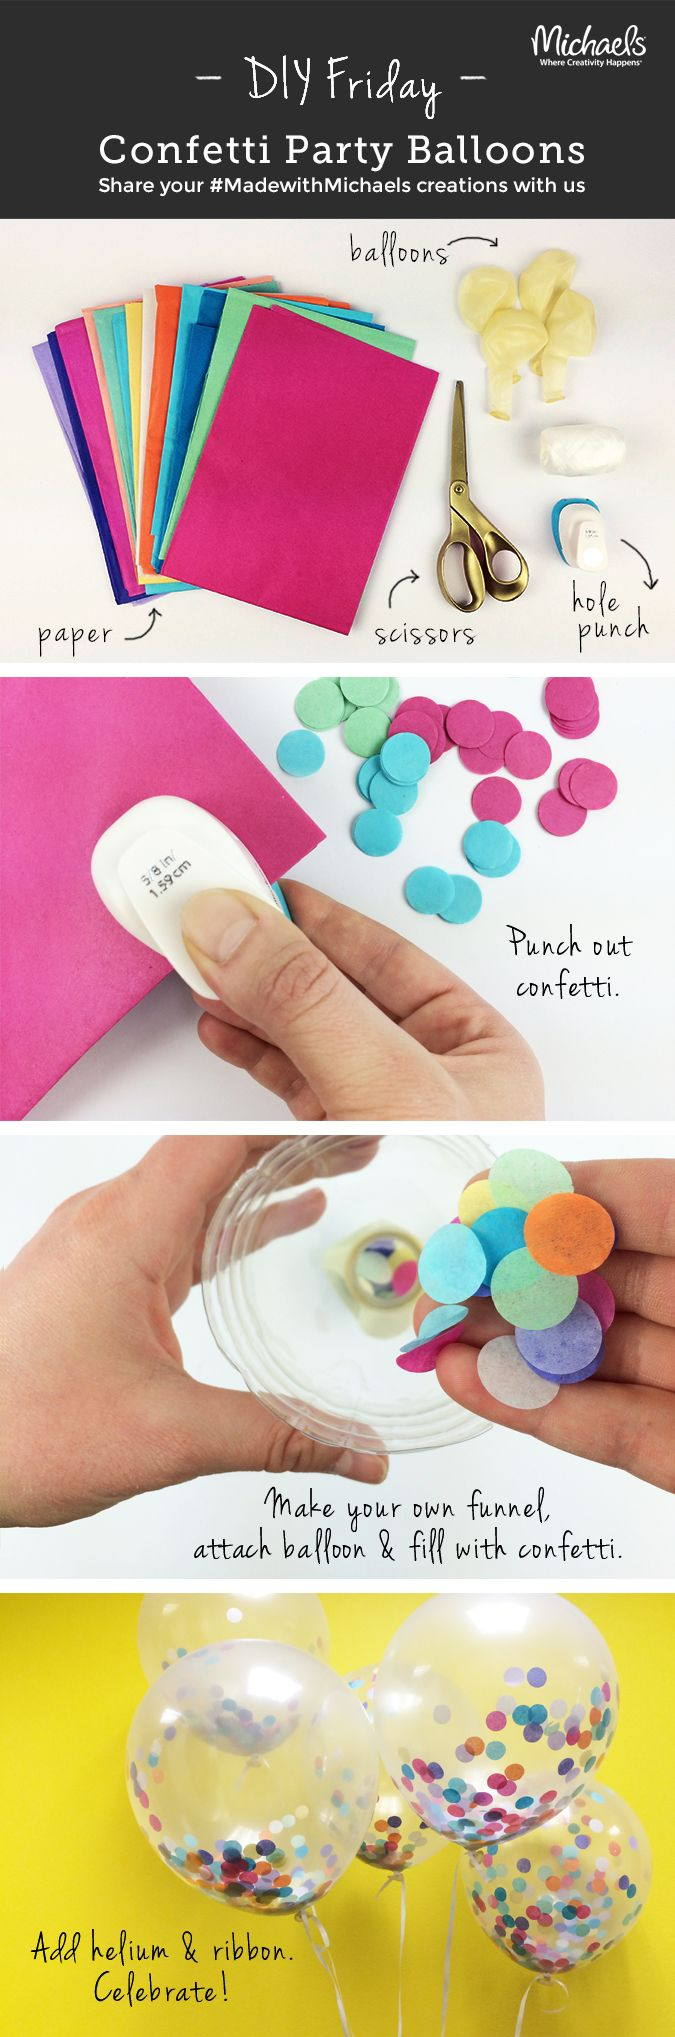 banner of how to make confetti balloons